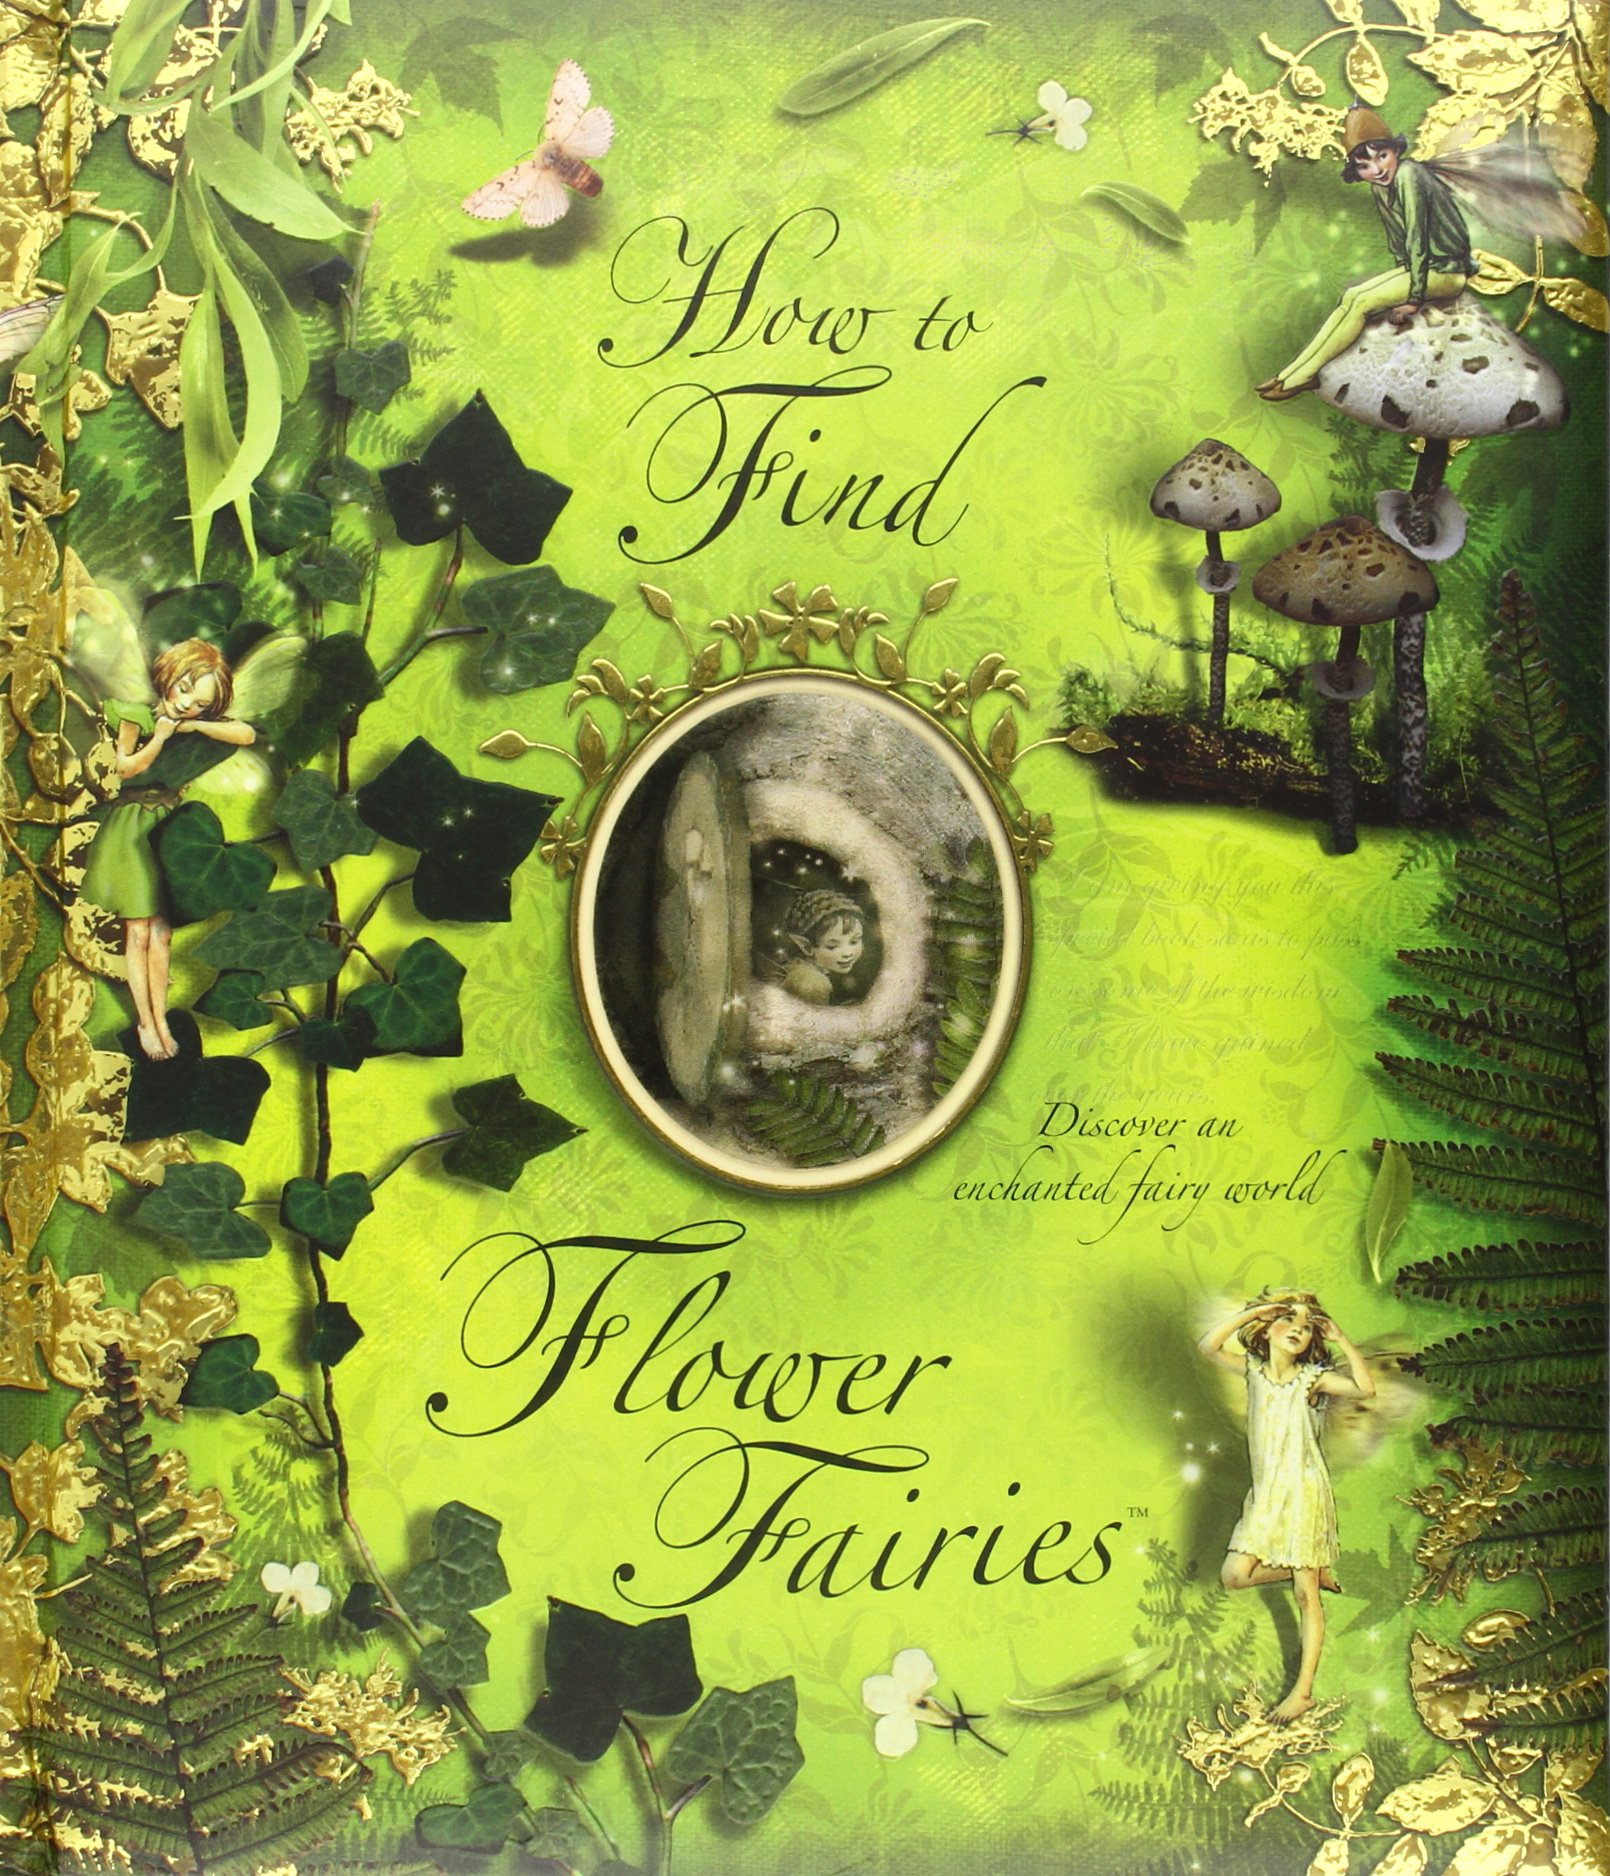 how to find flower fairies amazon co uk cicely mary barker